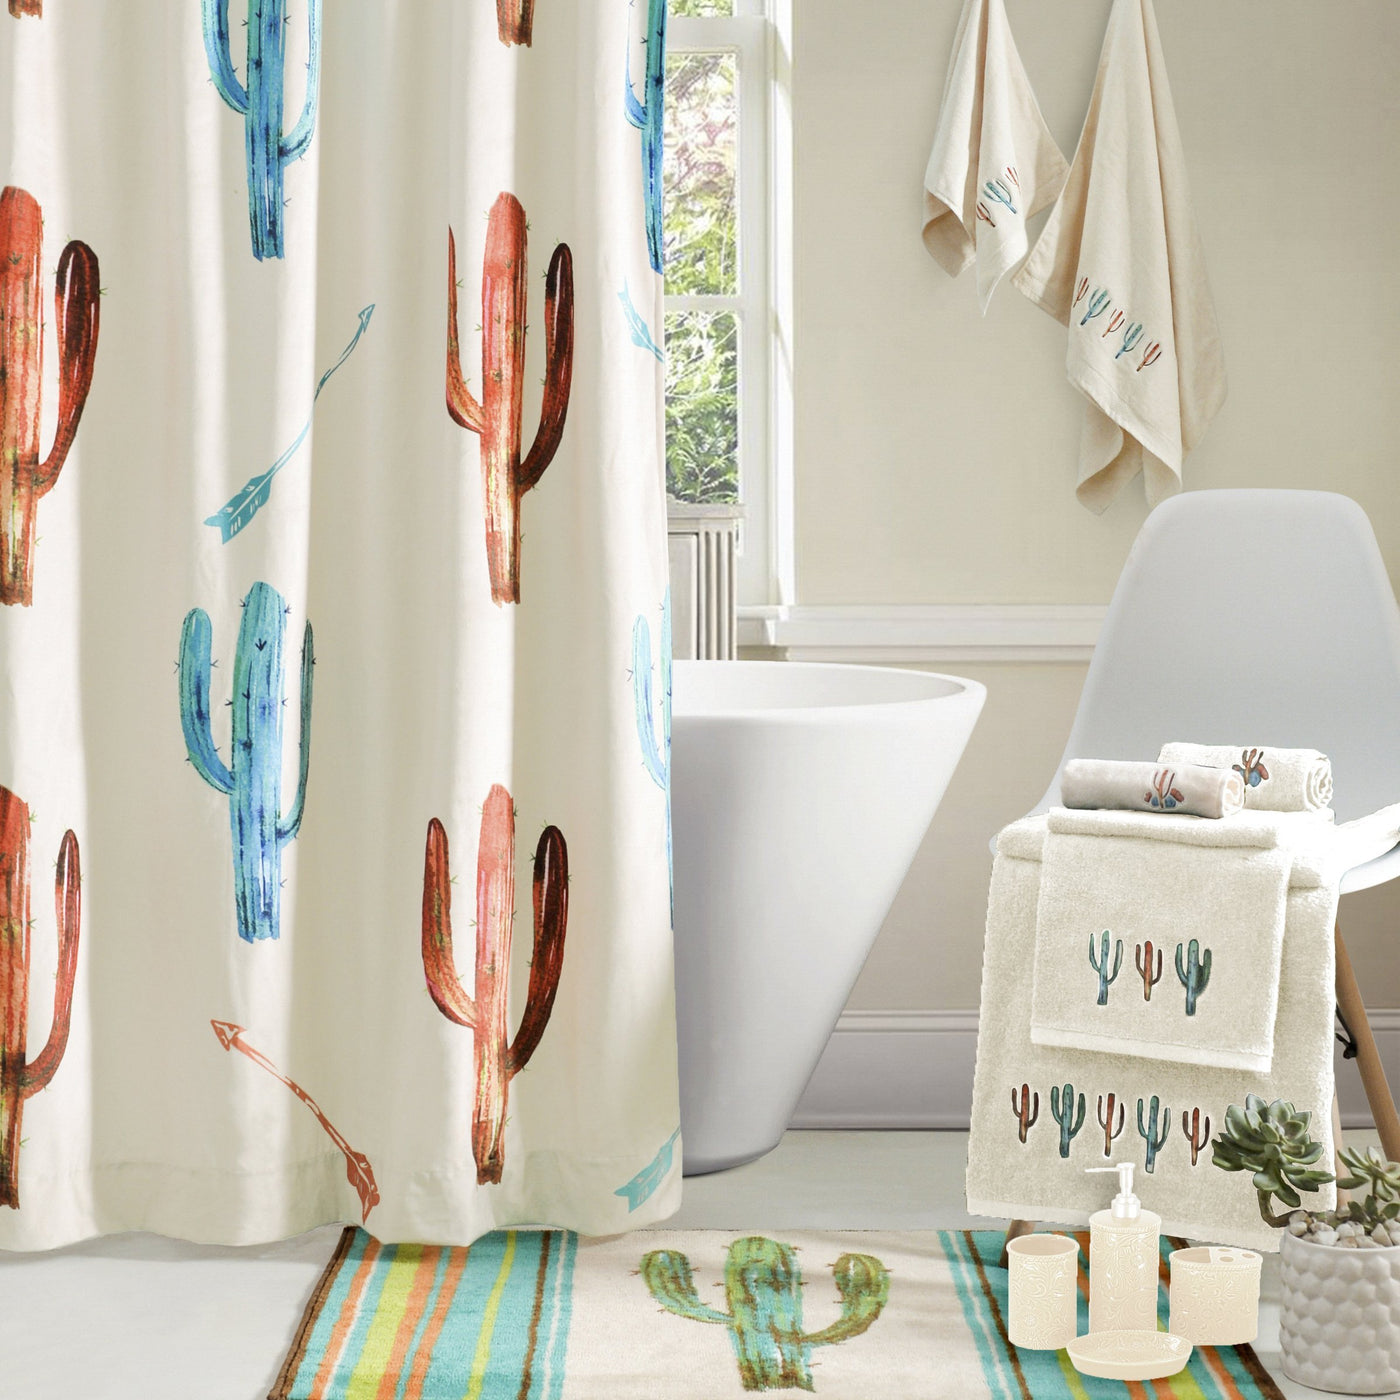 Bathroom Towel & Accessory Sets-HiEnd Accents